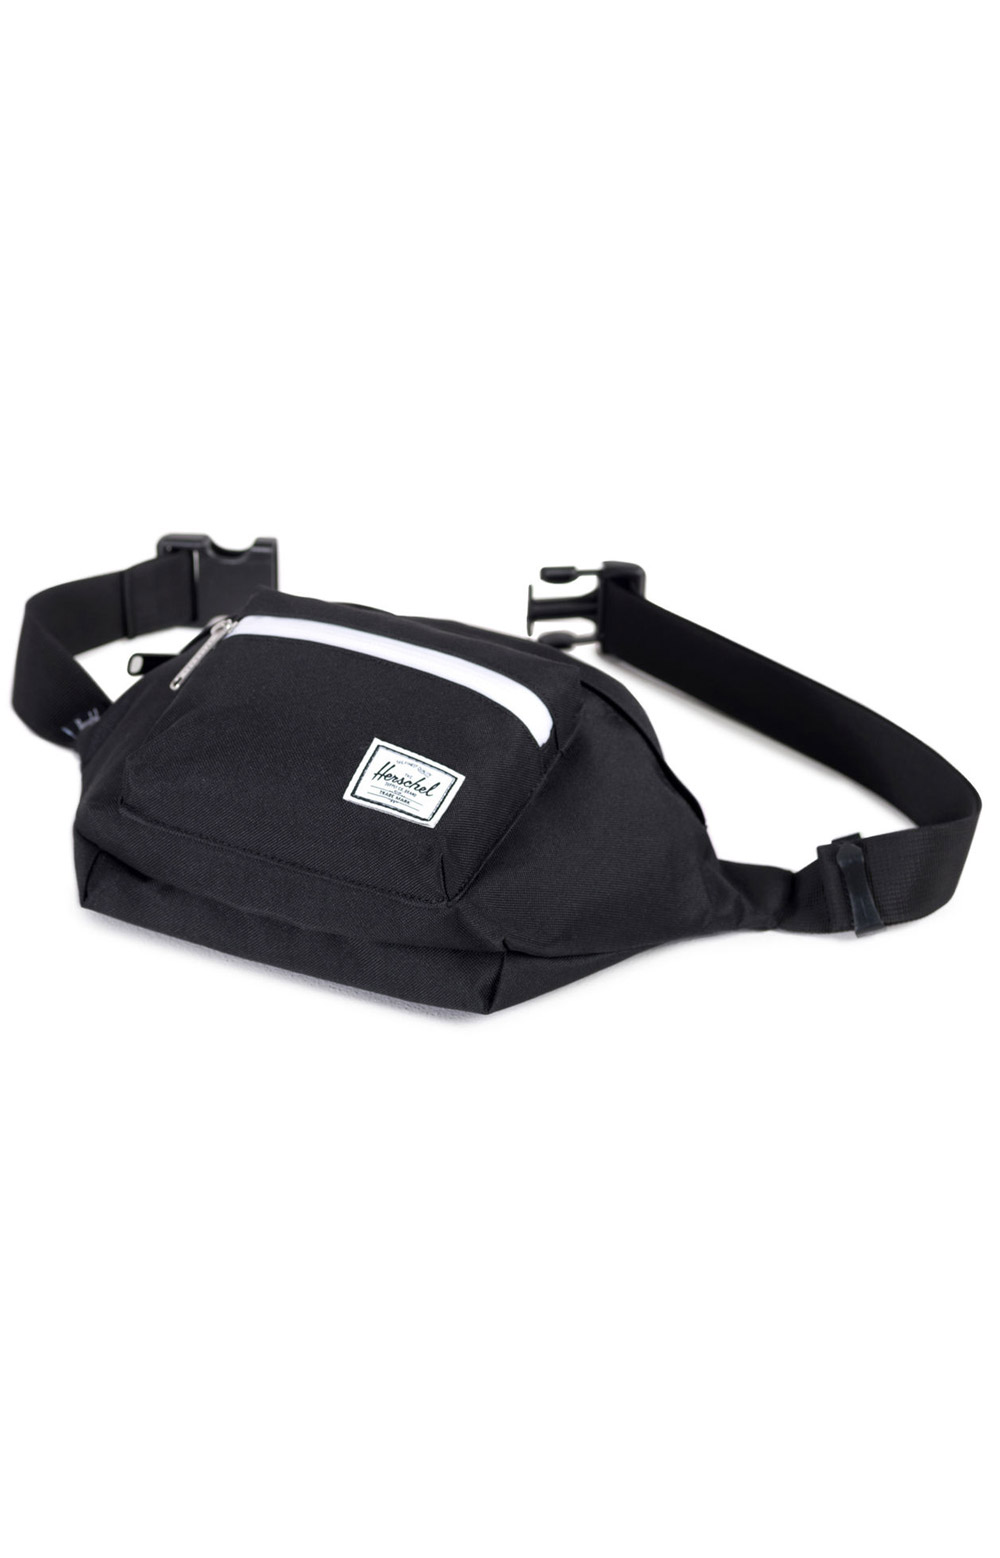 Seventeen Hip Pack - Black 2